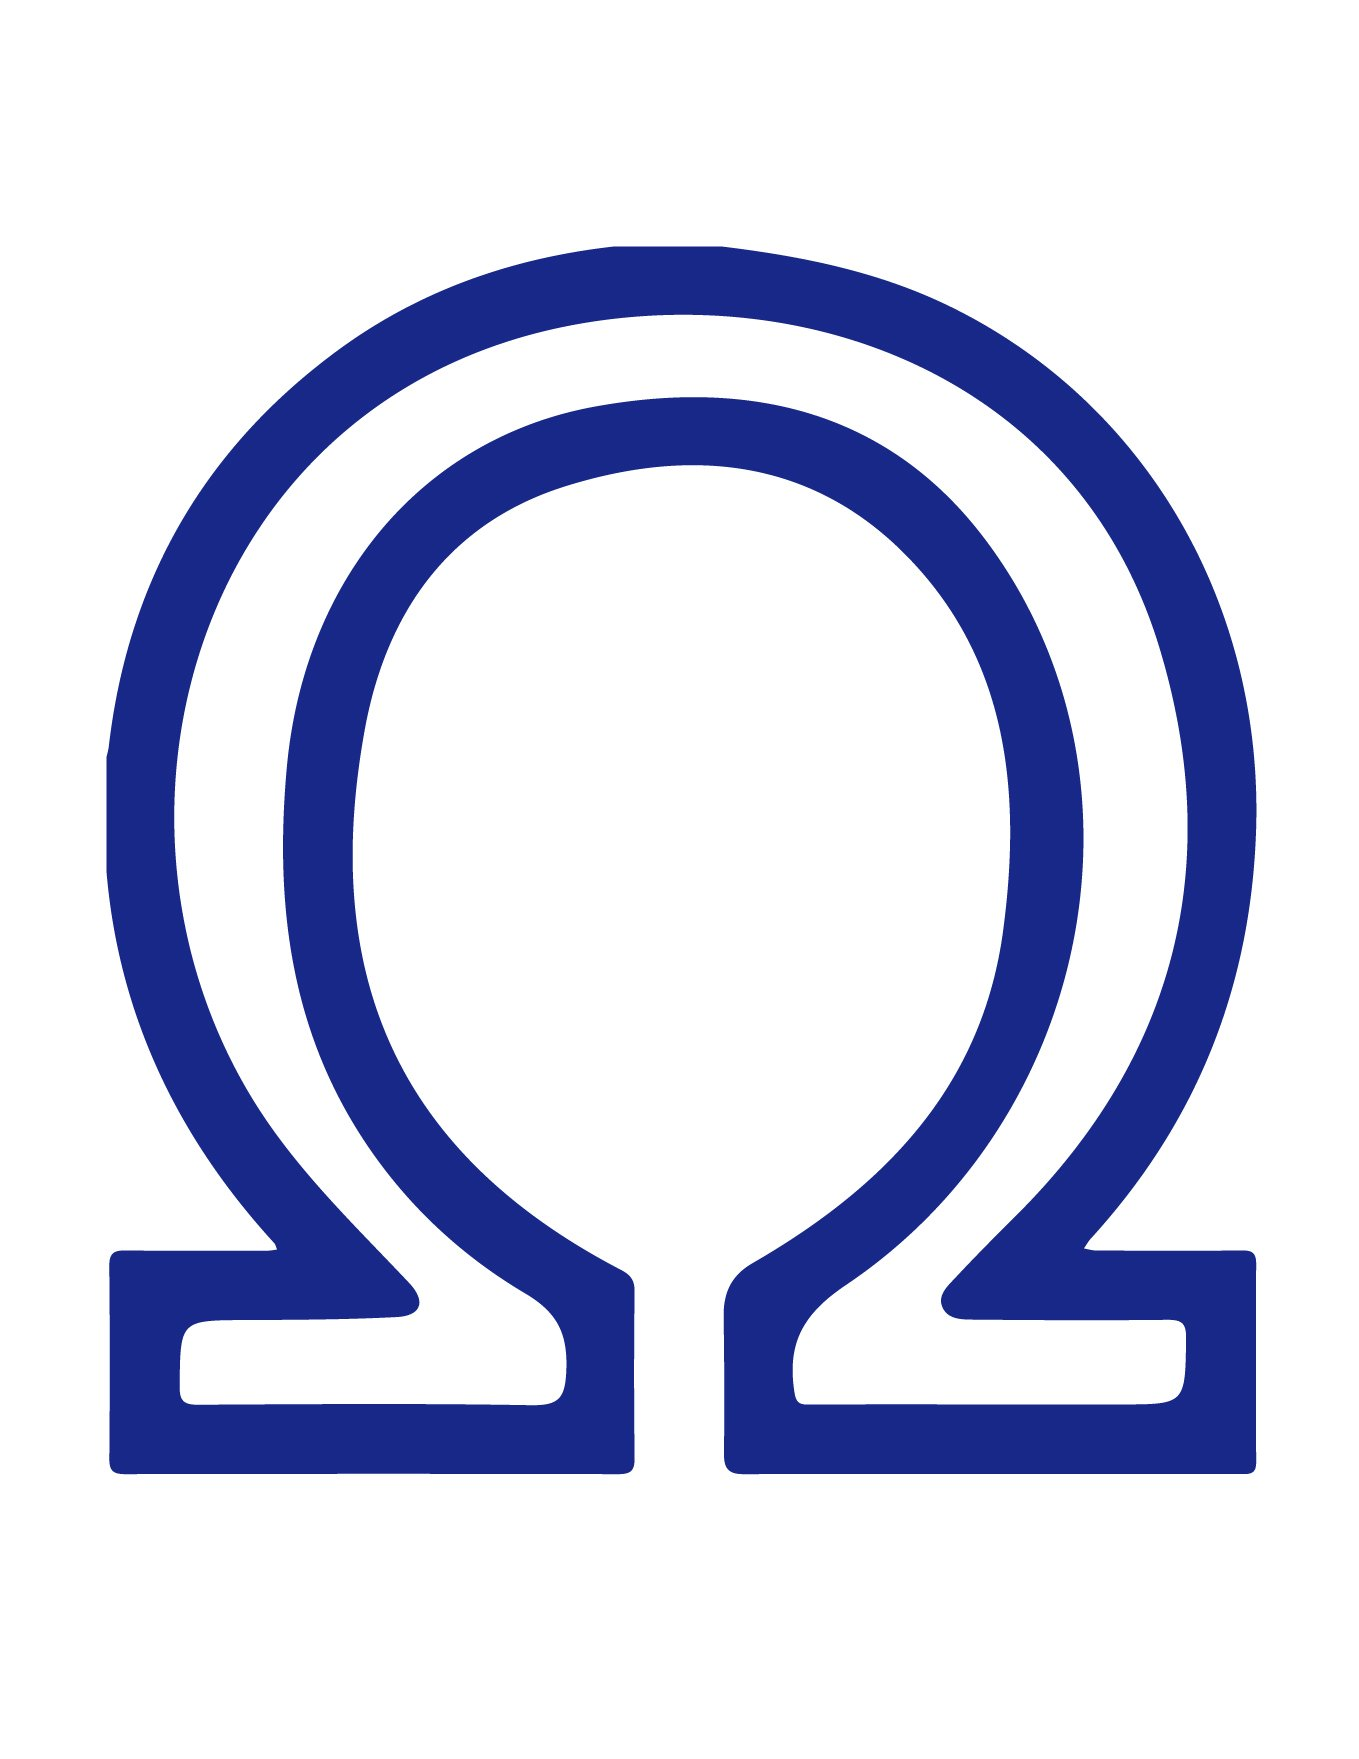 Omega Symbol/Sign and Its Meaning